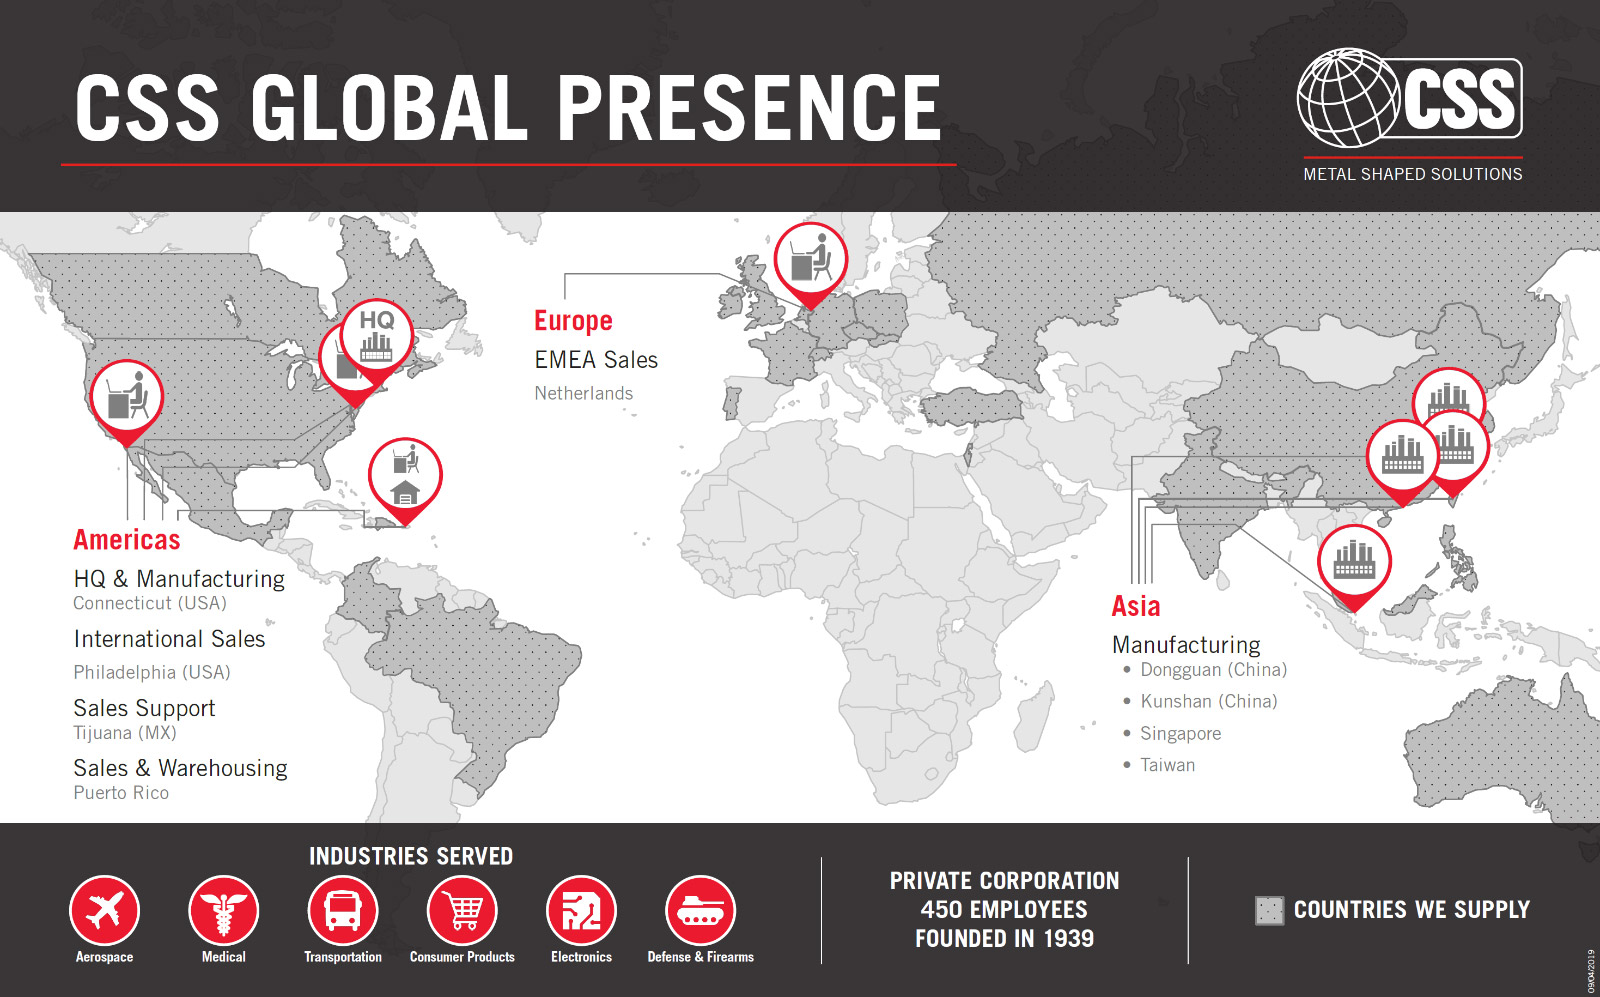 A map of the CSS Global Presence